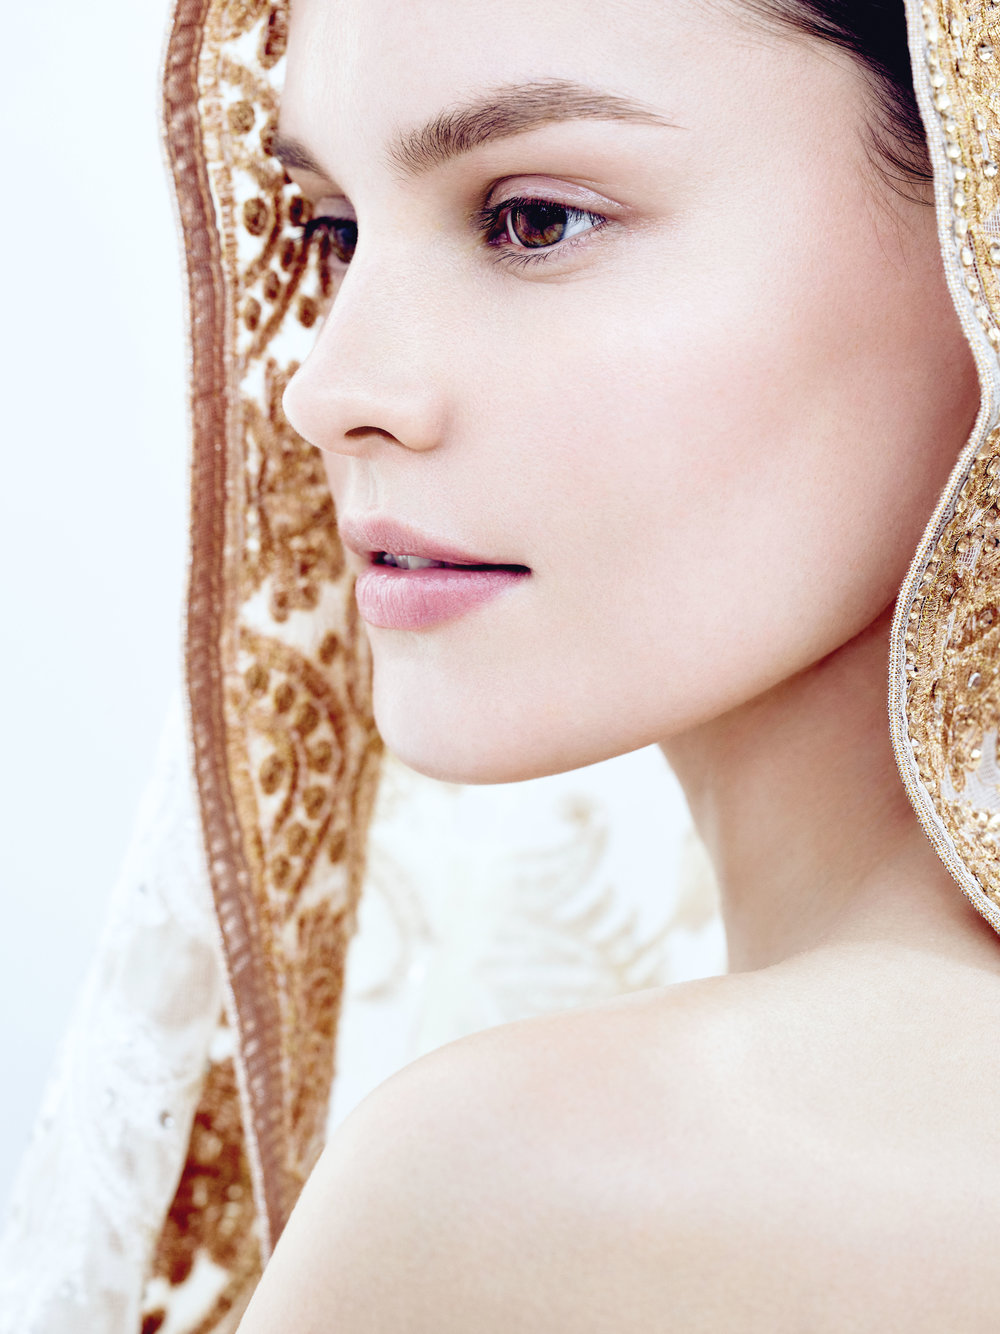 Tulasara_Wedding_Masque_Overnight_beauty_image_2_vertical.jpg